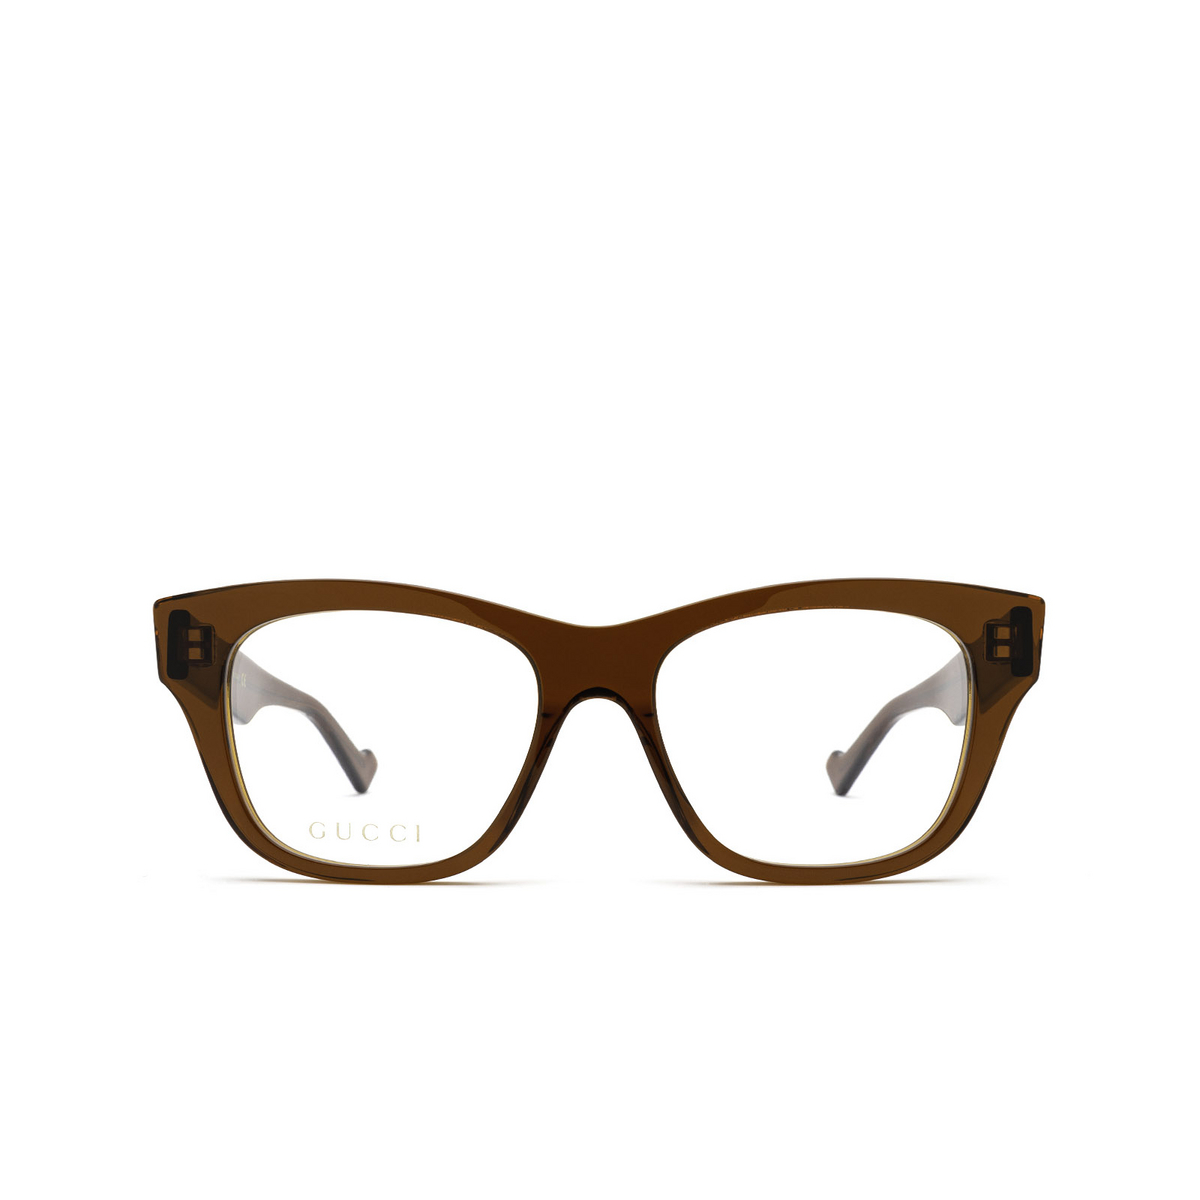 Gucci® Cat-eye Eyeglasses: GG0999O color Brown 003 - front view.